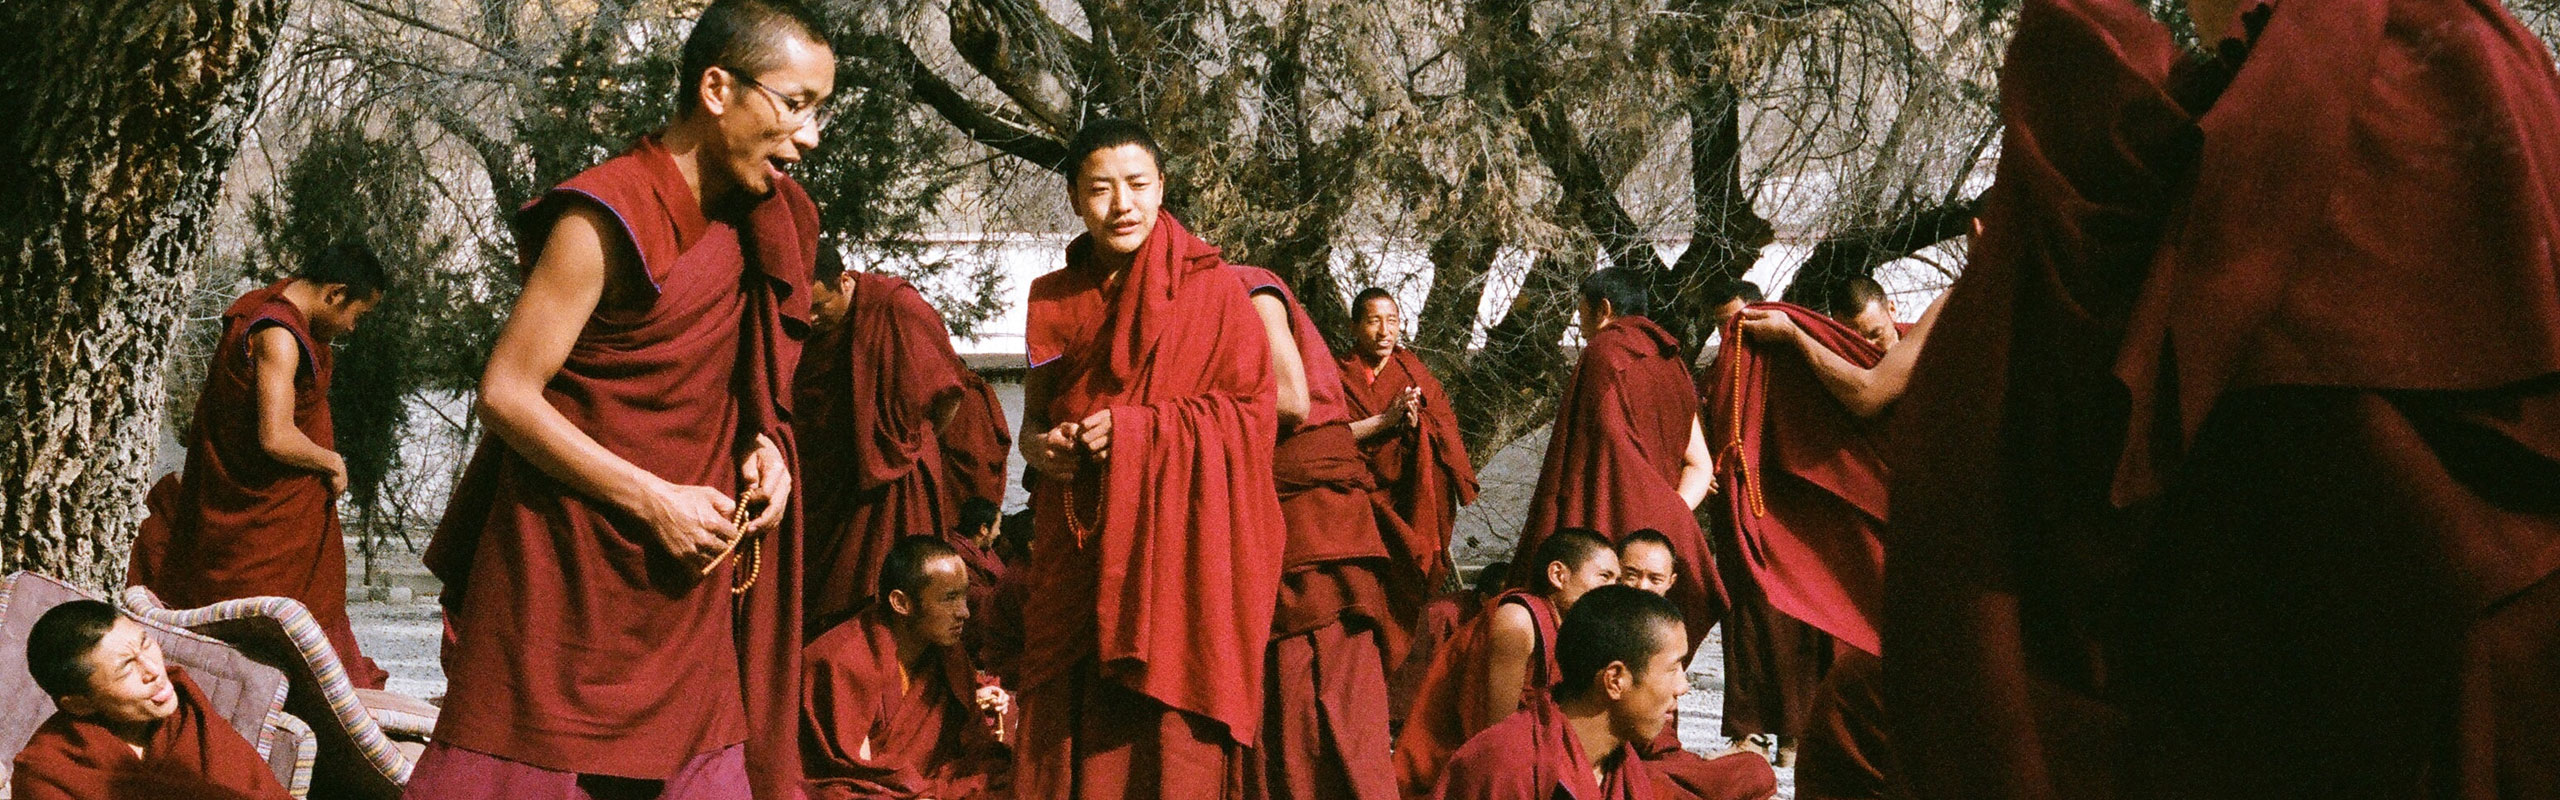 4-Day Lhasa Highlights, with Shangri-La Hotel Upgrade